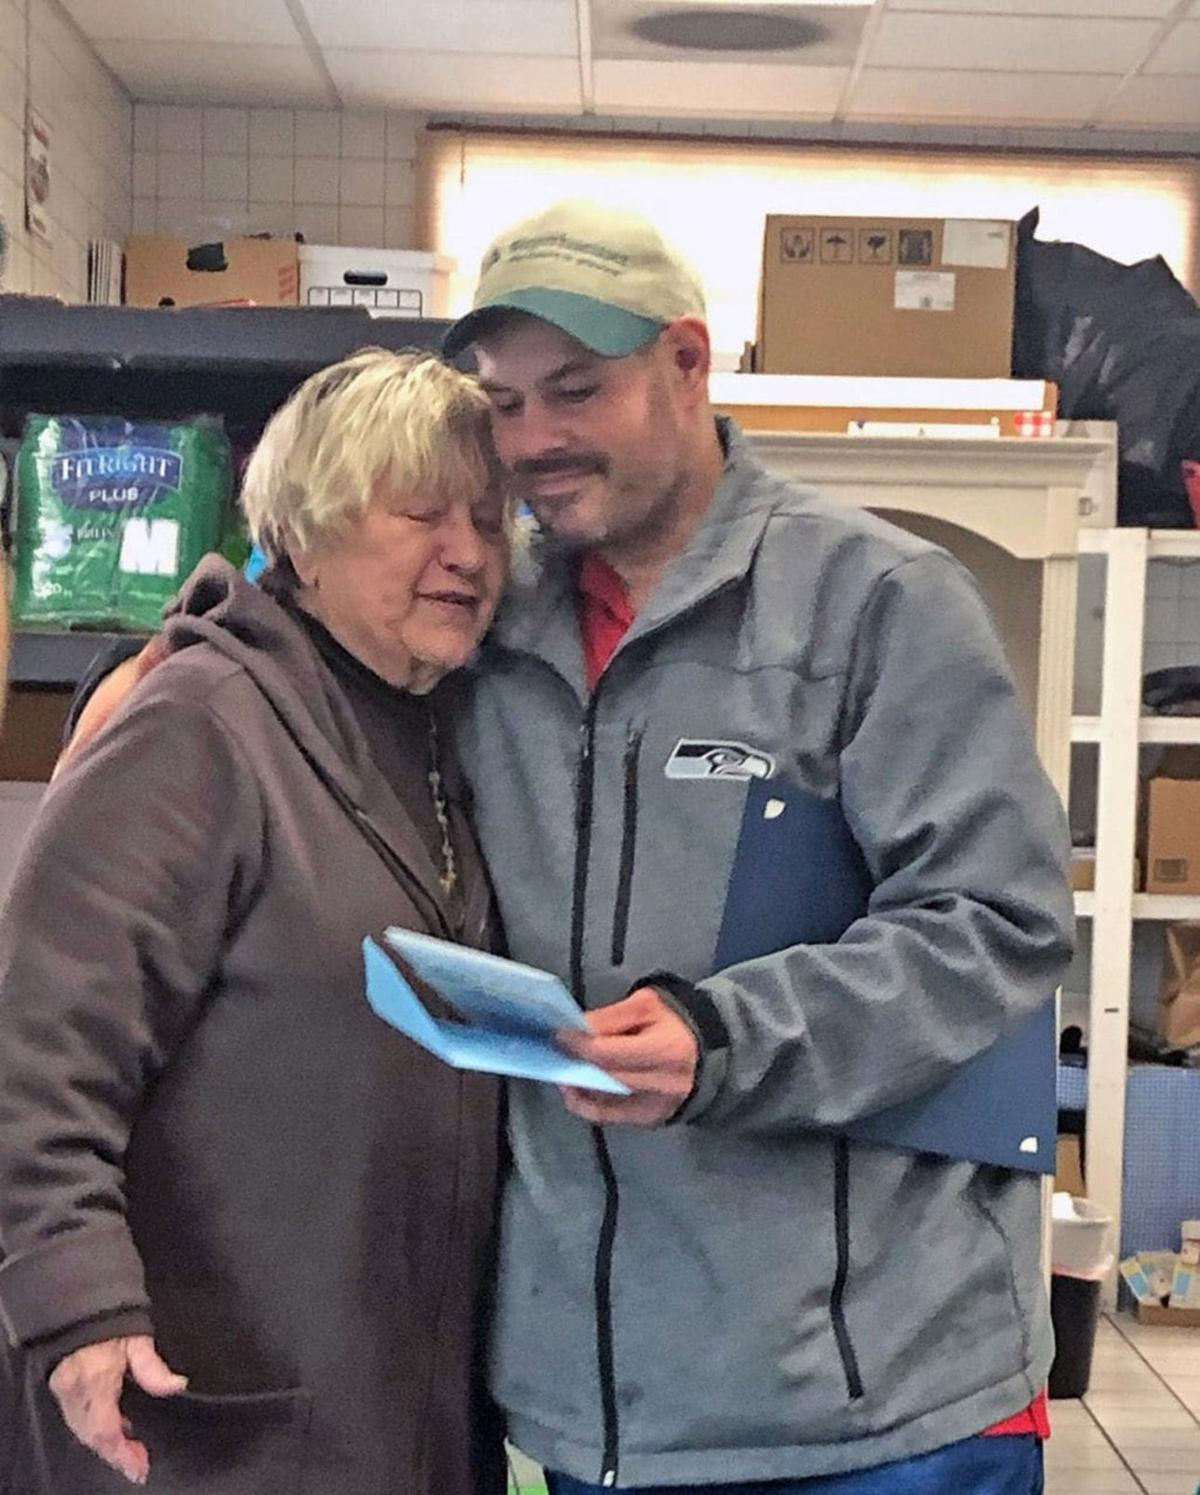 Homeless man finds $17,000 outside food bank, gives it to a worker inside